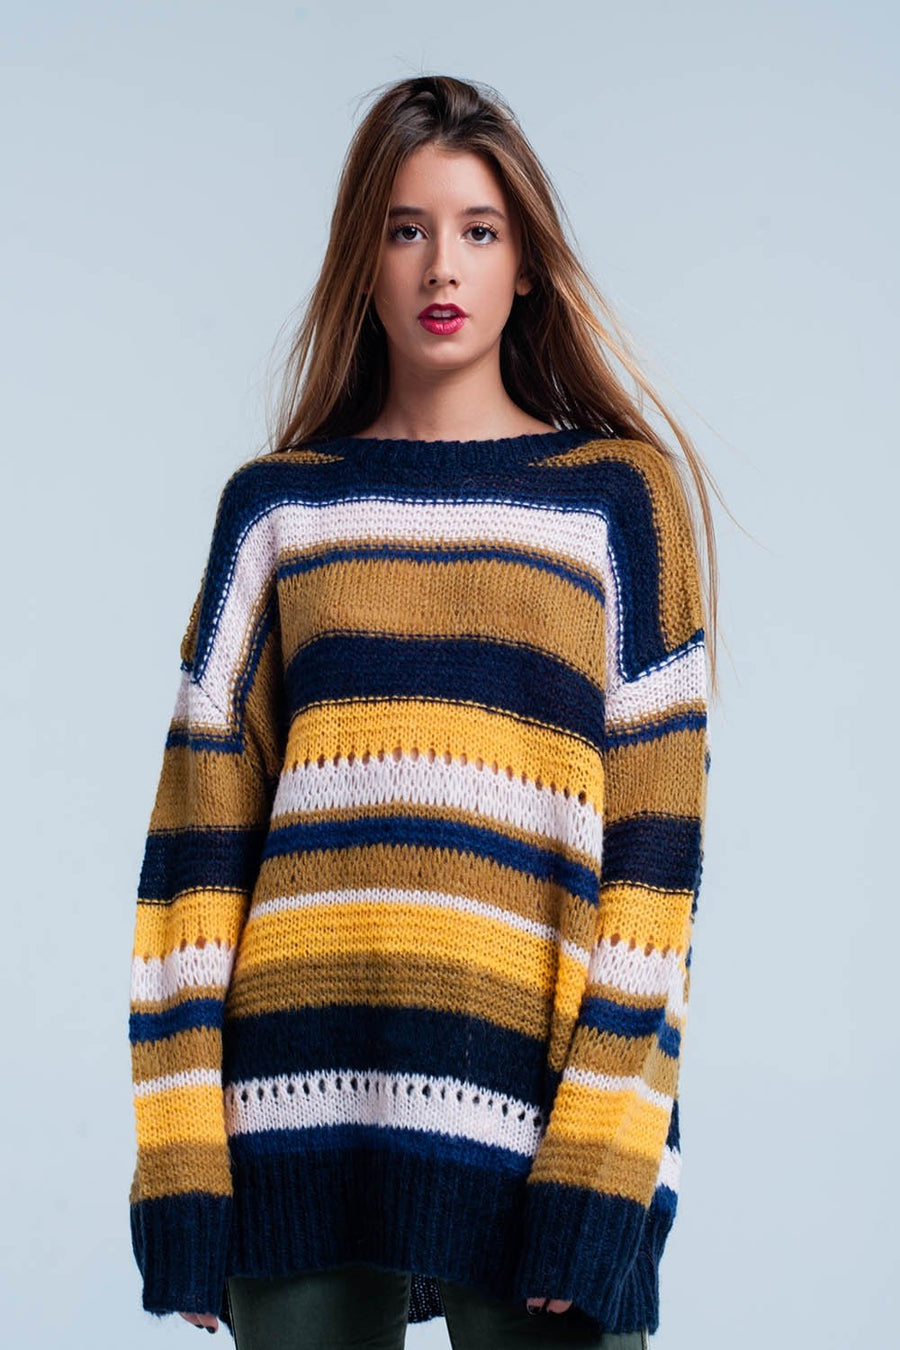 Mustard chunky knit striped oversized Sweater Women - Apparel - Sweaters Cardigans and Tops Tigerlily and Me